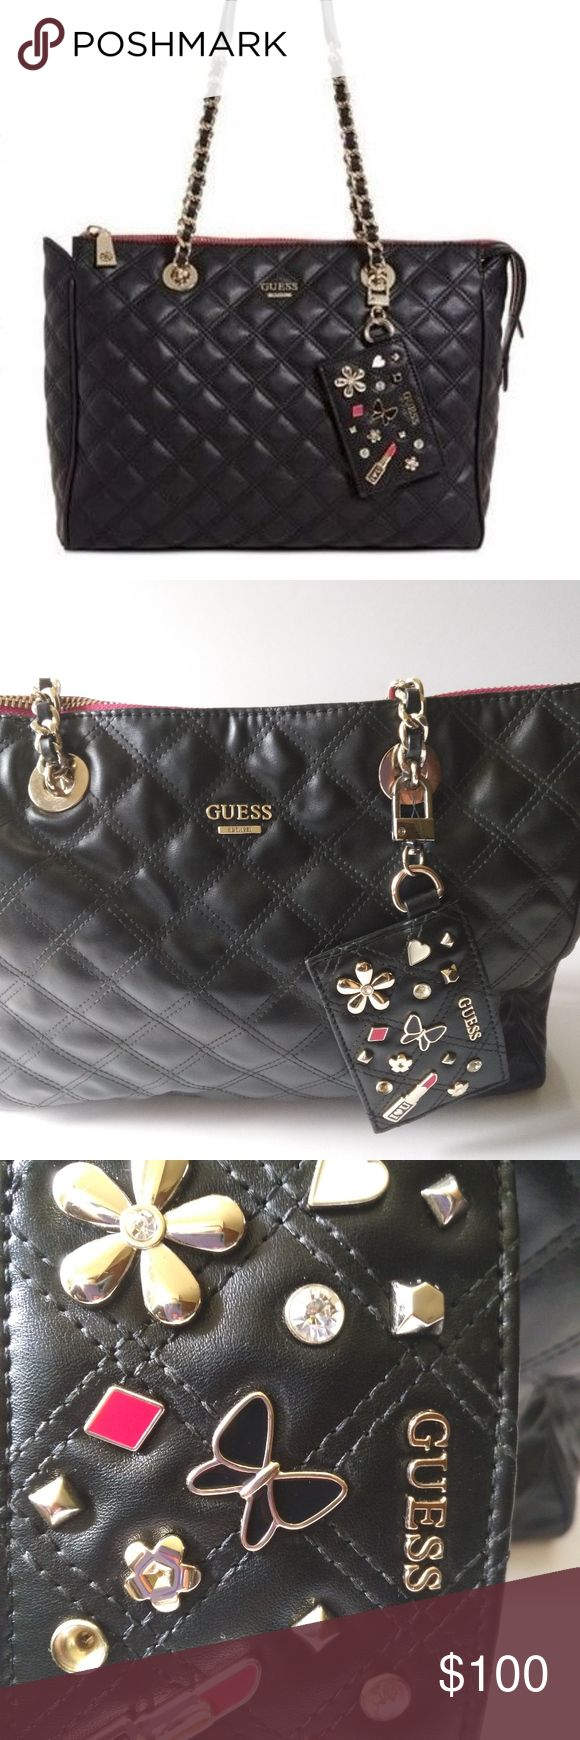 """GUESS Darin Extra-Large Carryall Black A fun hanging logo charm adds playful polish to this versatile GUESS carryall shaped from soft and smooth quilted faux leather and detailed with shining metallic hardware with a chain strap. Few times used, very good condition, one diamond missing from logo charm Extra-Large sized bag; 16-1/2""""W x 11""""H x 3-3/4""""D 11""""L chain-detail double handles Zip closure Pale shiny gold-tone exterior hardware, logo, hanging charm, feet & 1 zip pocket Guess Bags…"""